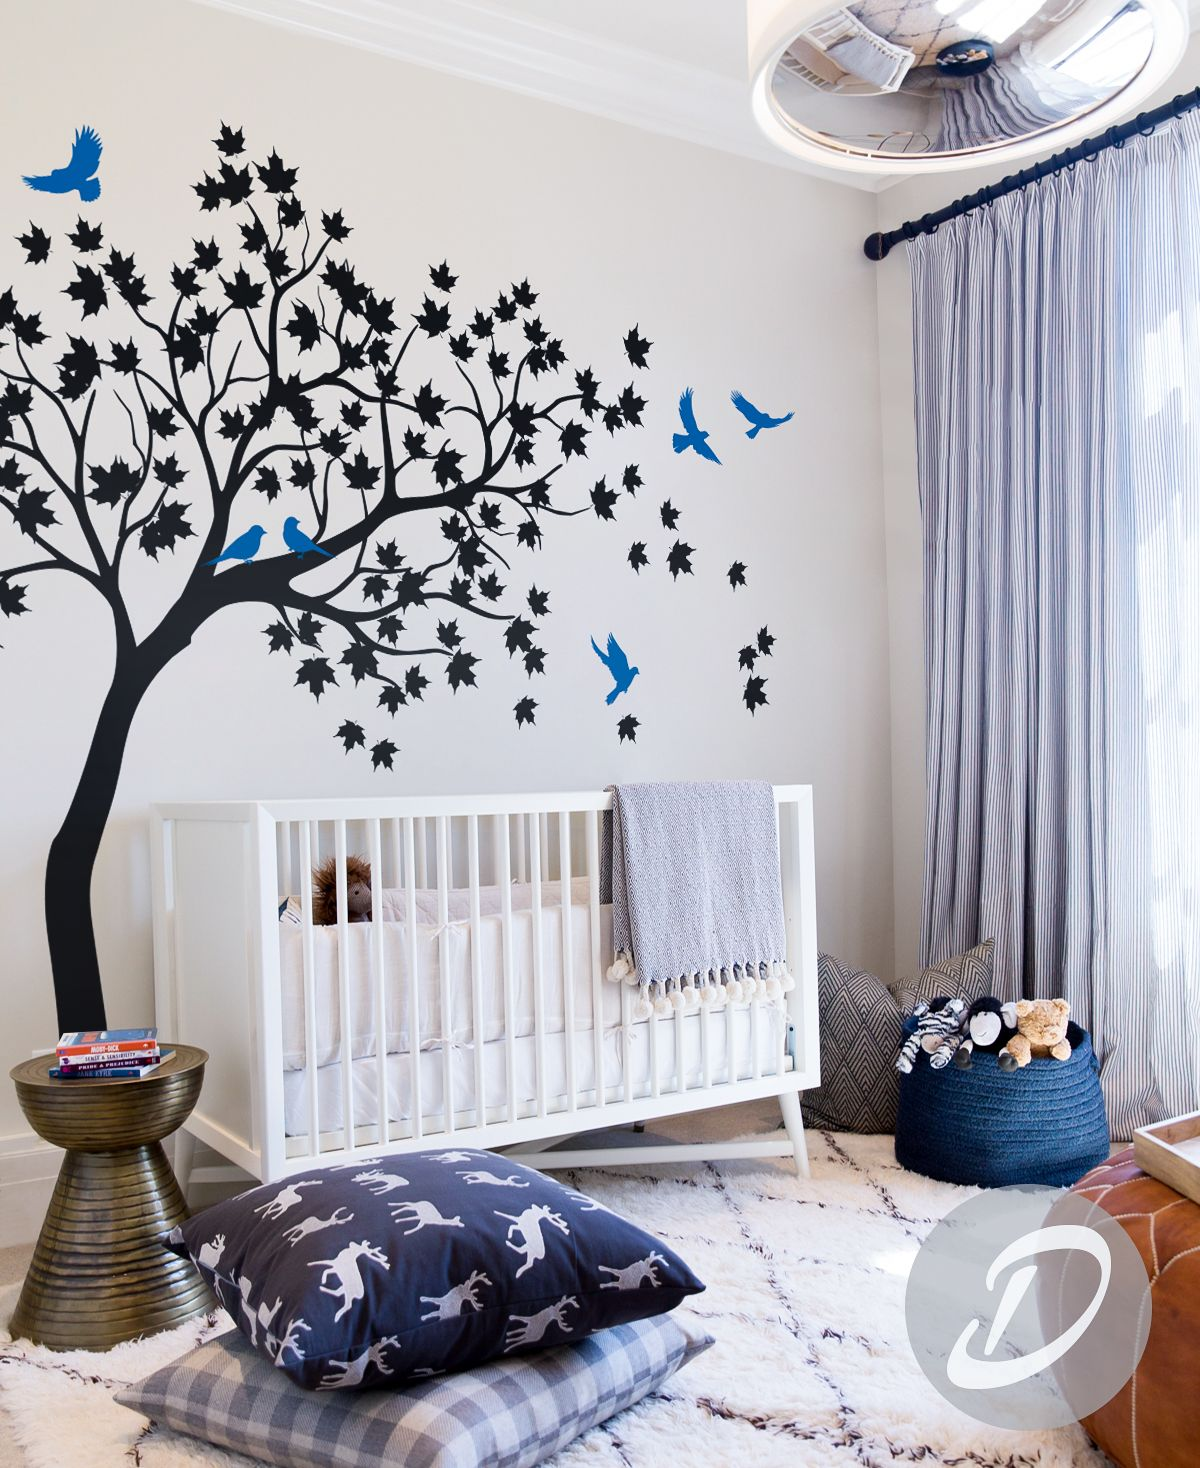 Elegance In Your Room / Black Tree Wall Decal #tree #decal #bluebirds # Part 86